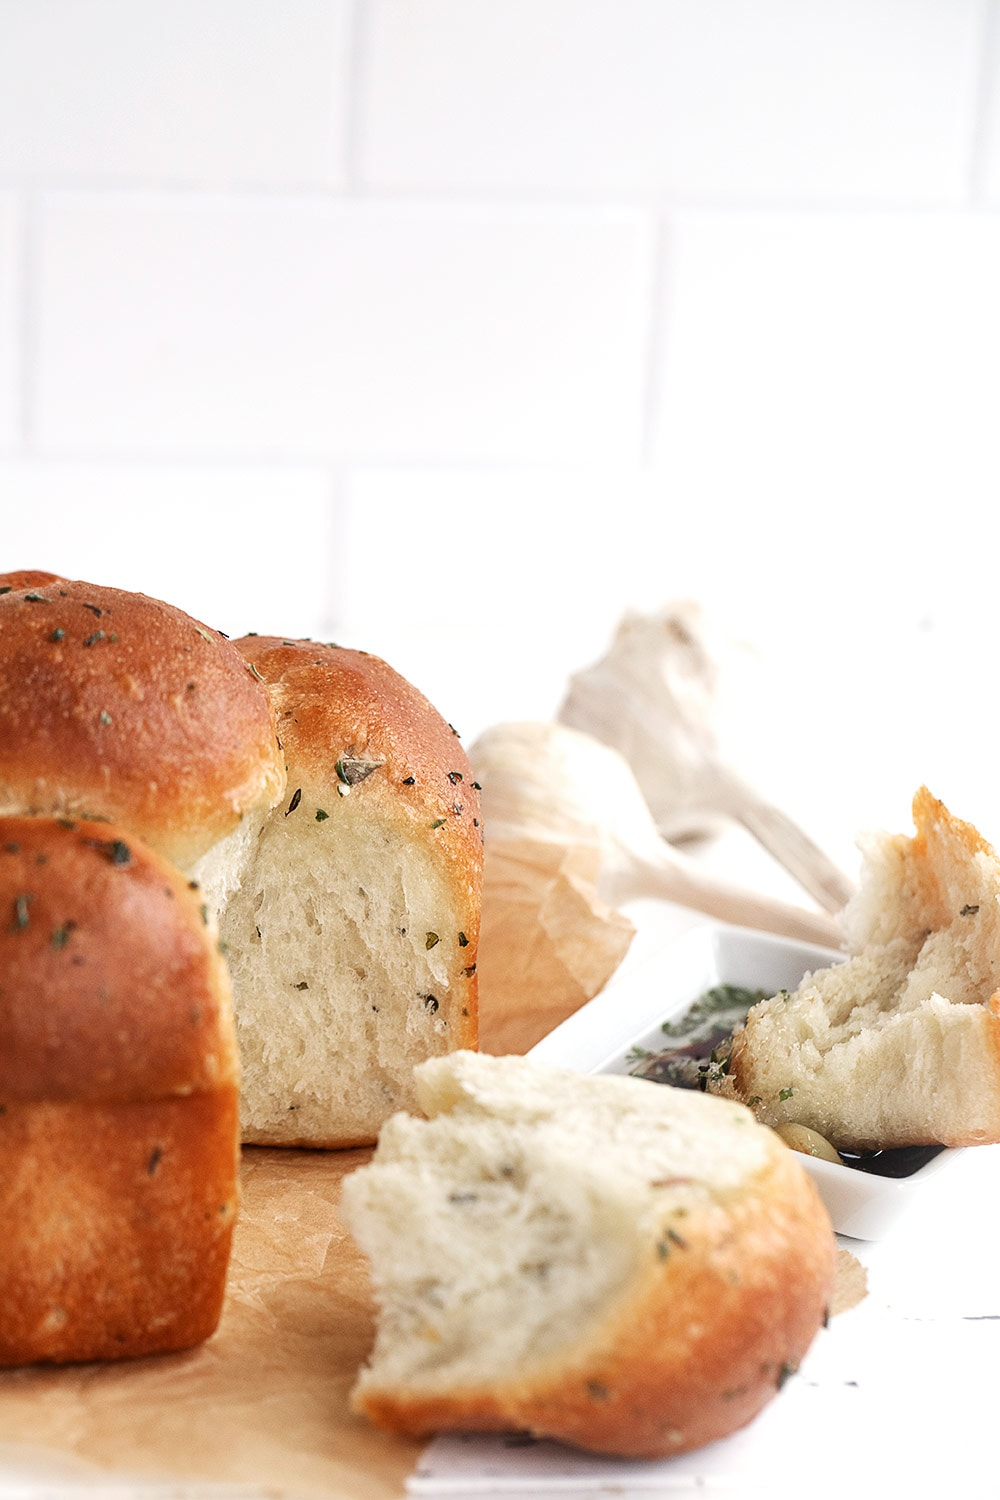 herb and garlic pull apart rolls, with one roll pulled out